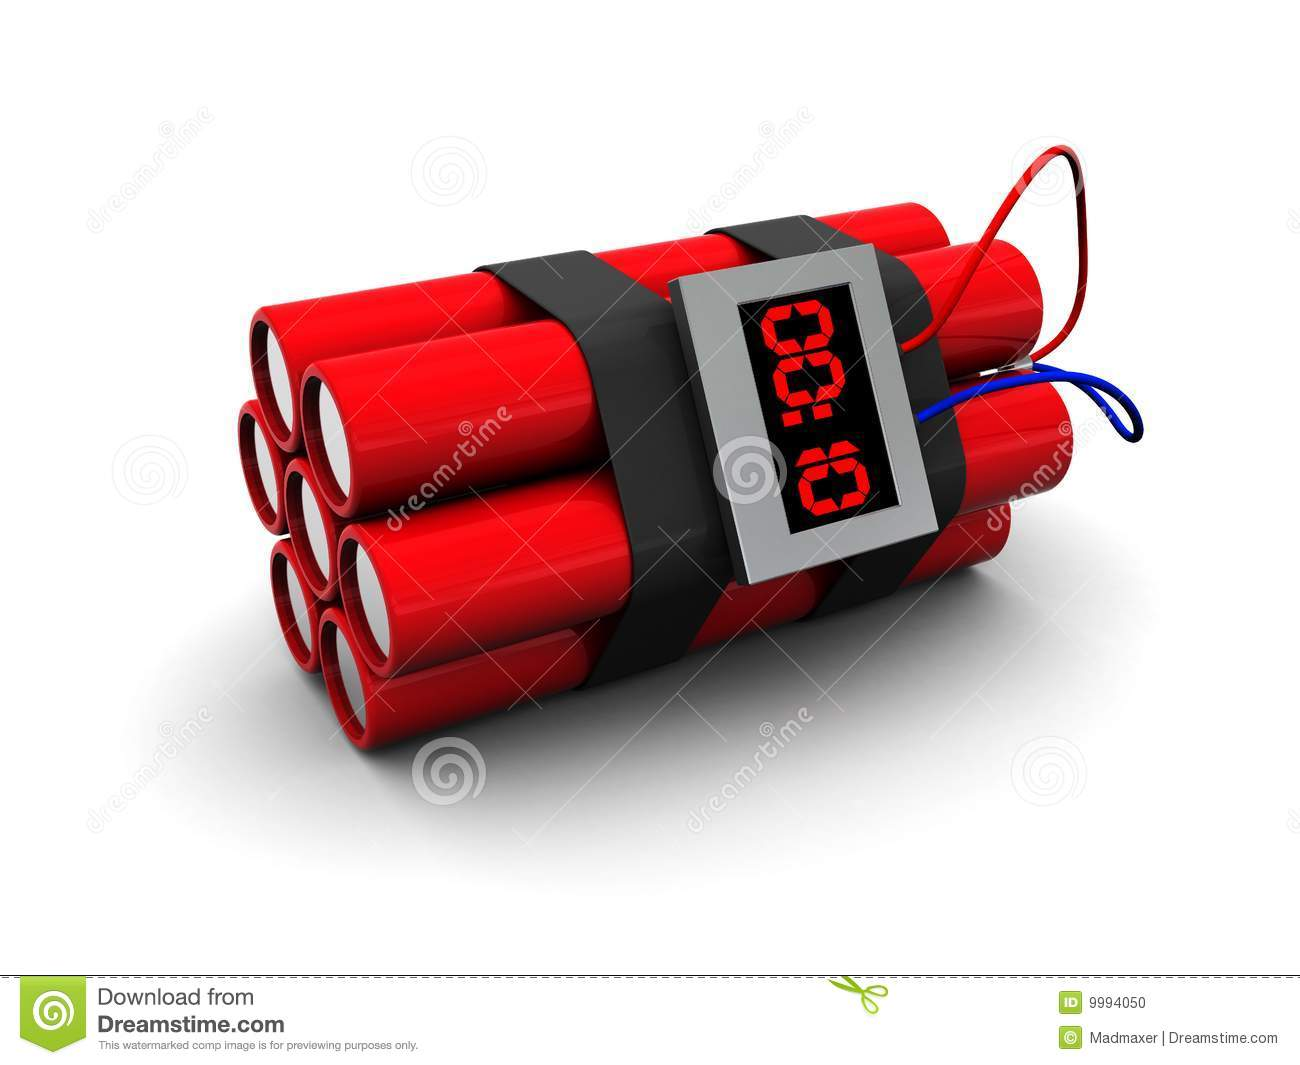 3d illustration of dynamite with timer over white background.